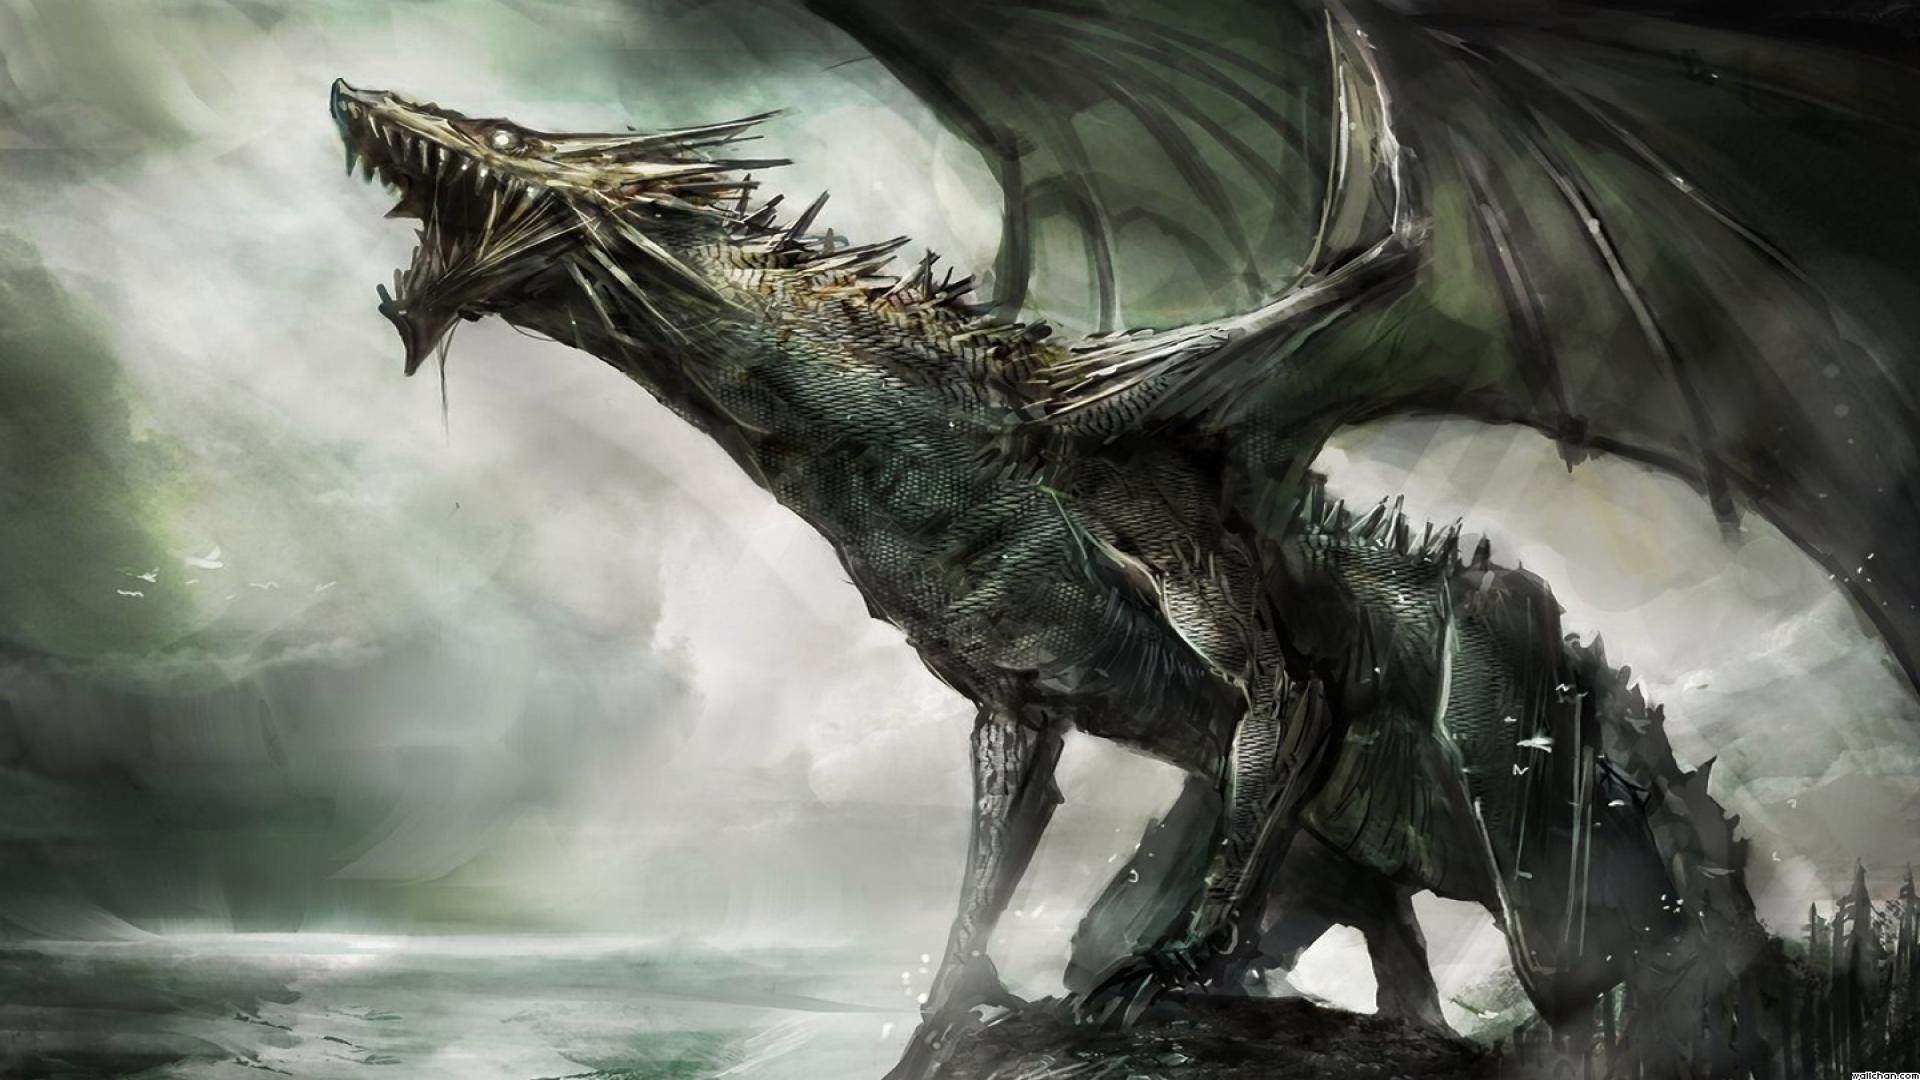 1920x1080  images-for-gt-cool-dragons-wallpaper-hd-awesome